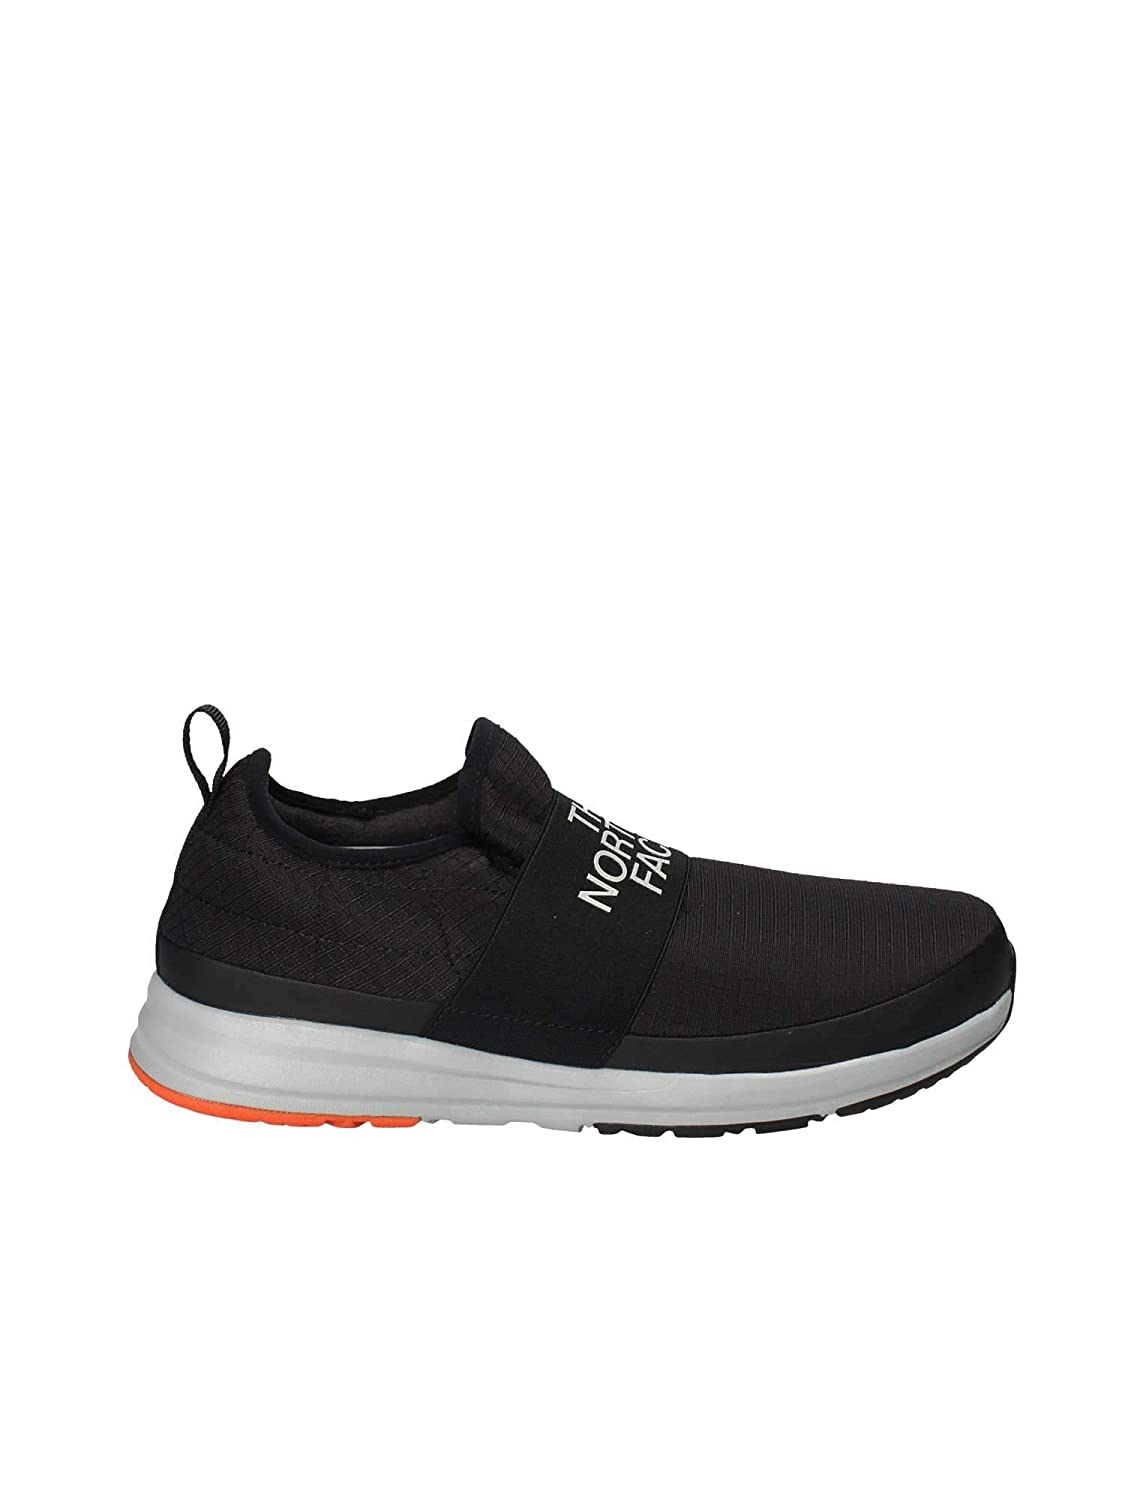 The North Face M Cadman NSE NSE NSE Moc TNF schwarz Scarlet Ibis 7H US 9f1655